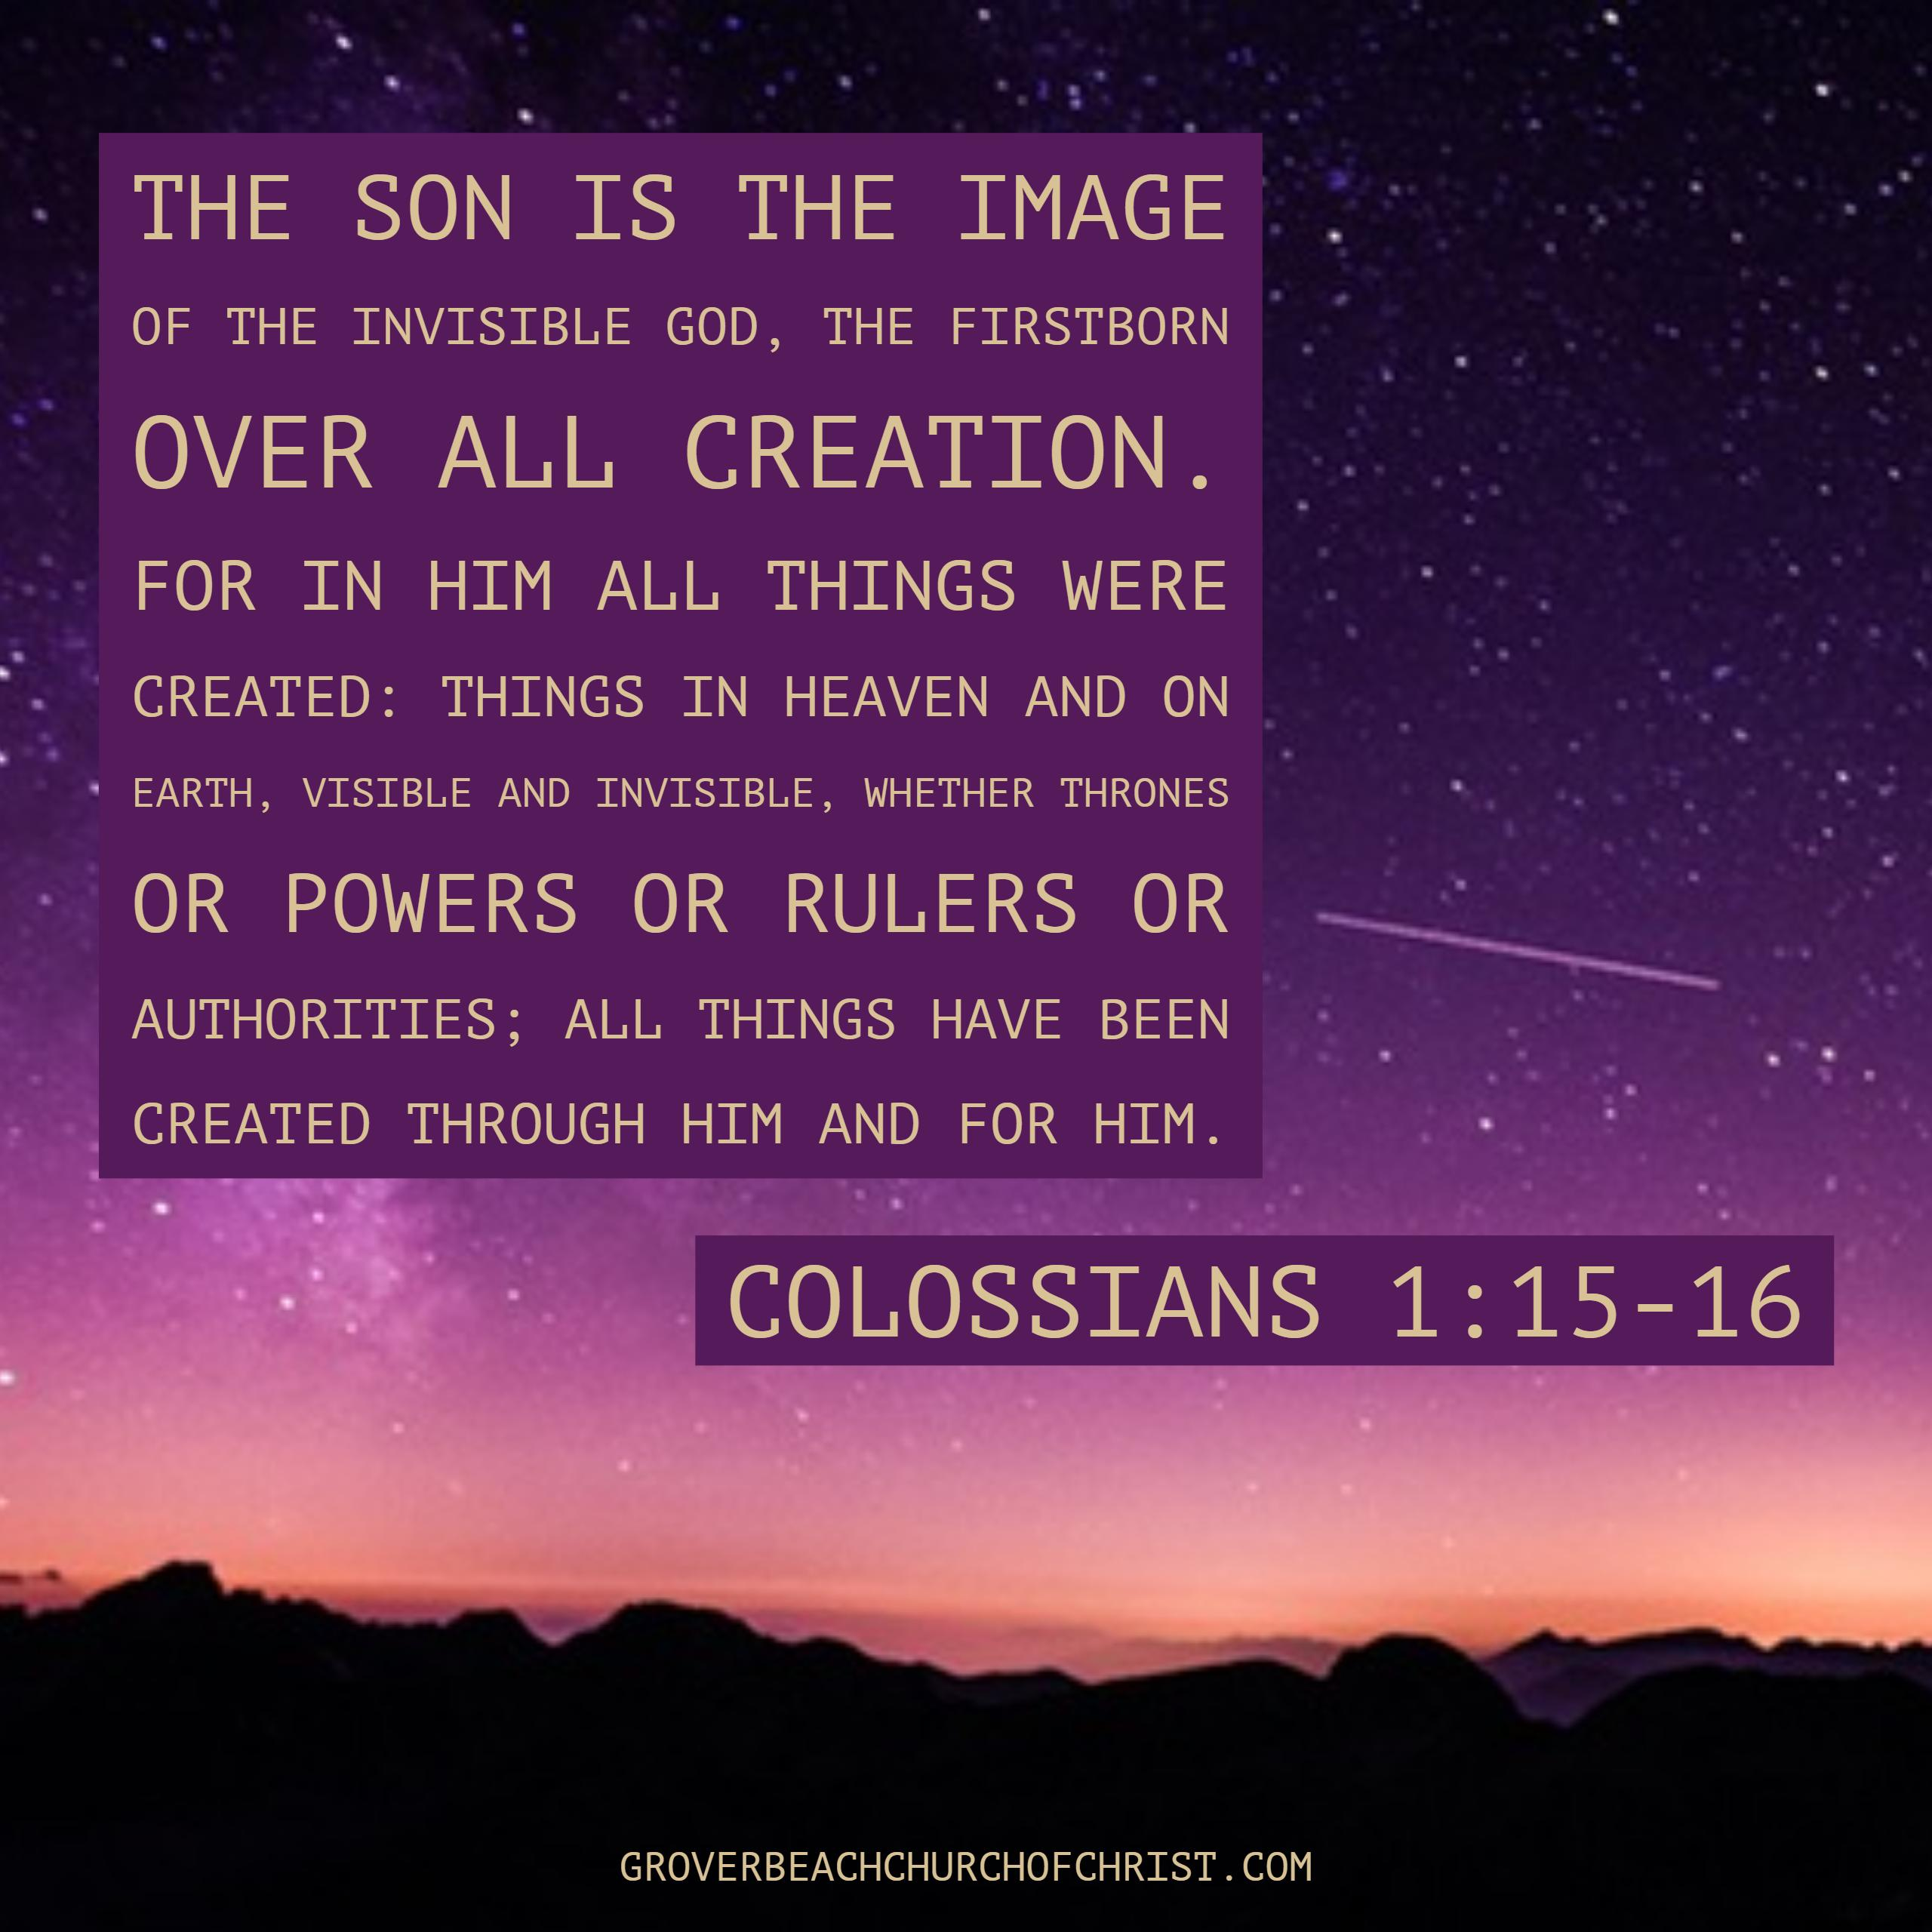 colossians-1-15-16-the-son-is-the-image